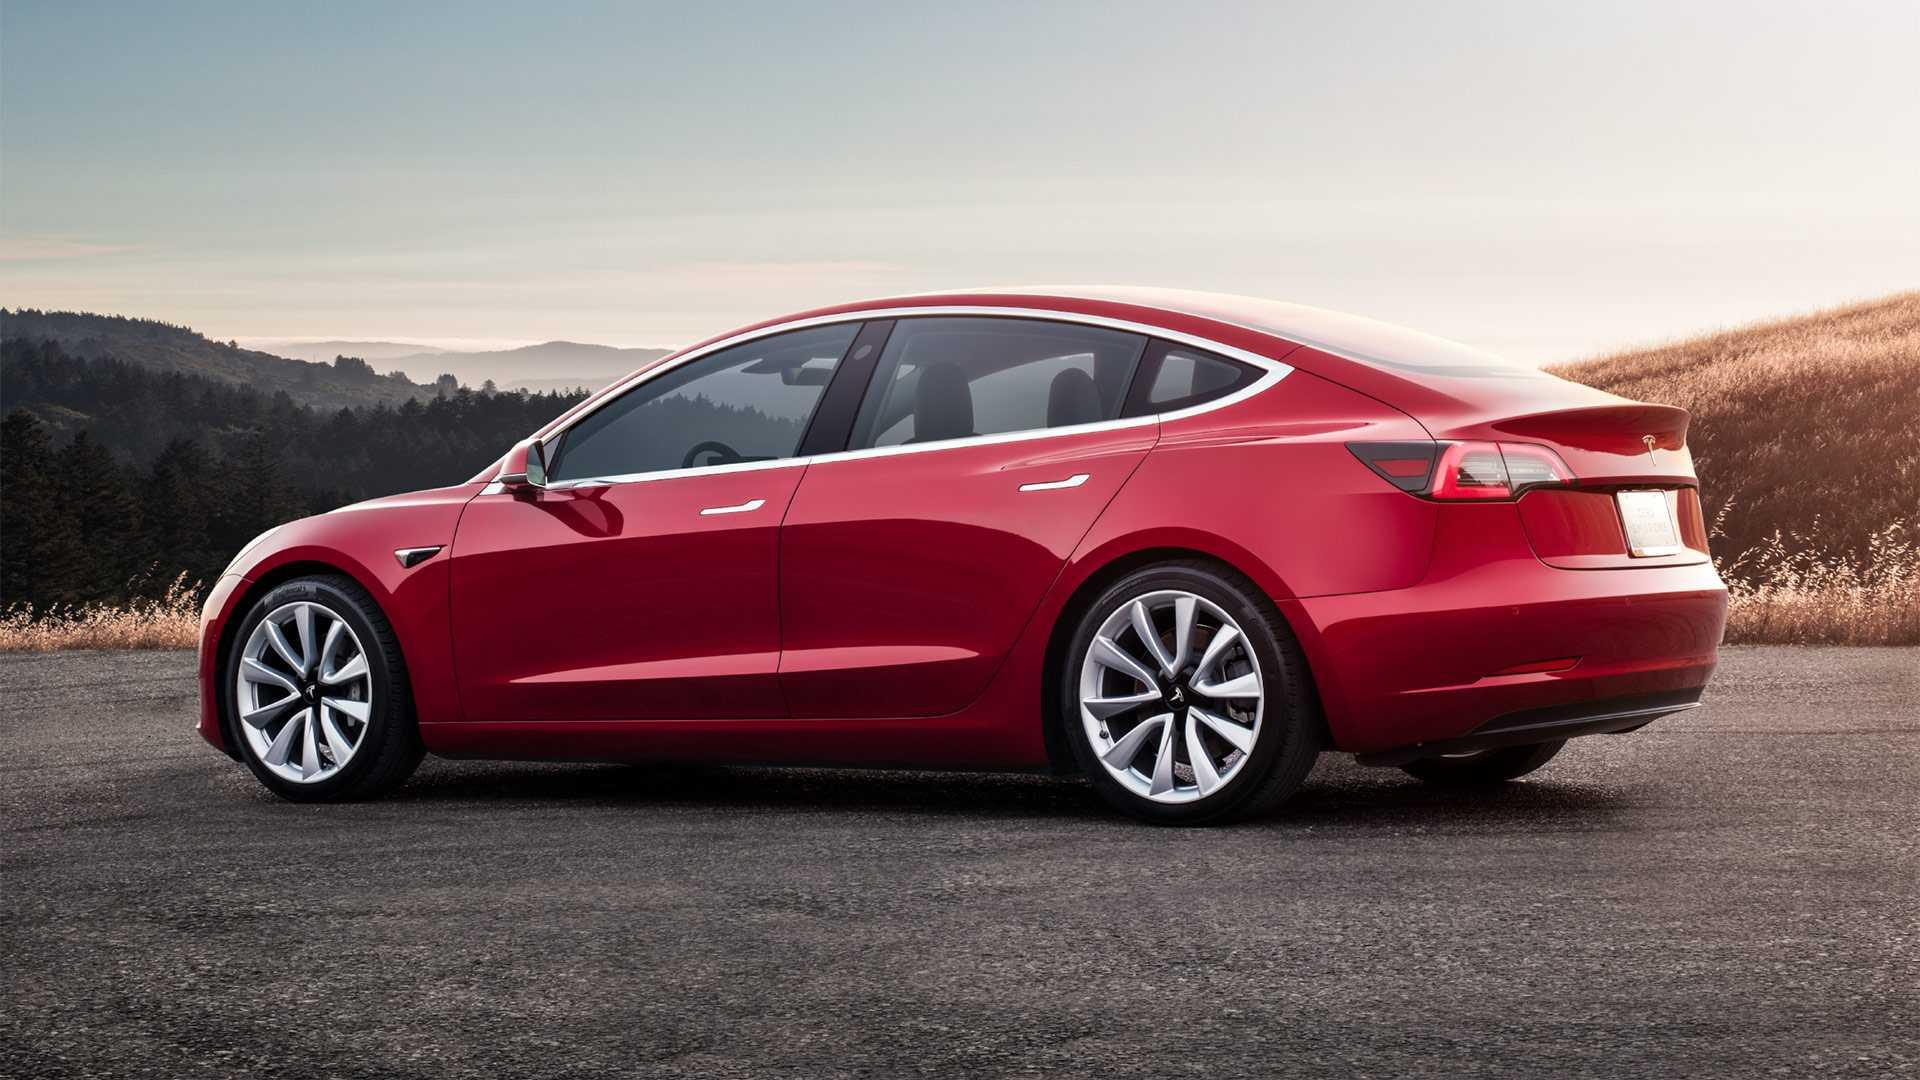 Tesla is no longer #1 BEV OEM in Western Europe